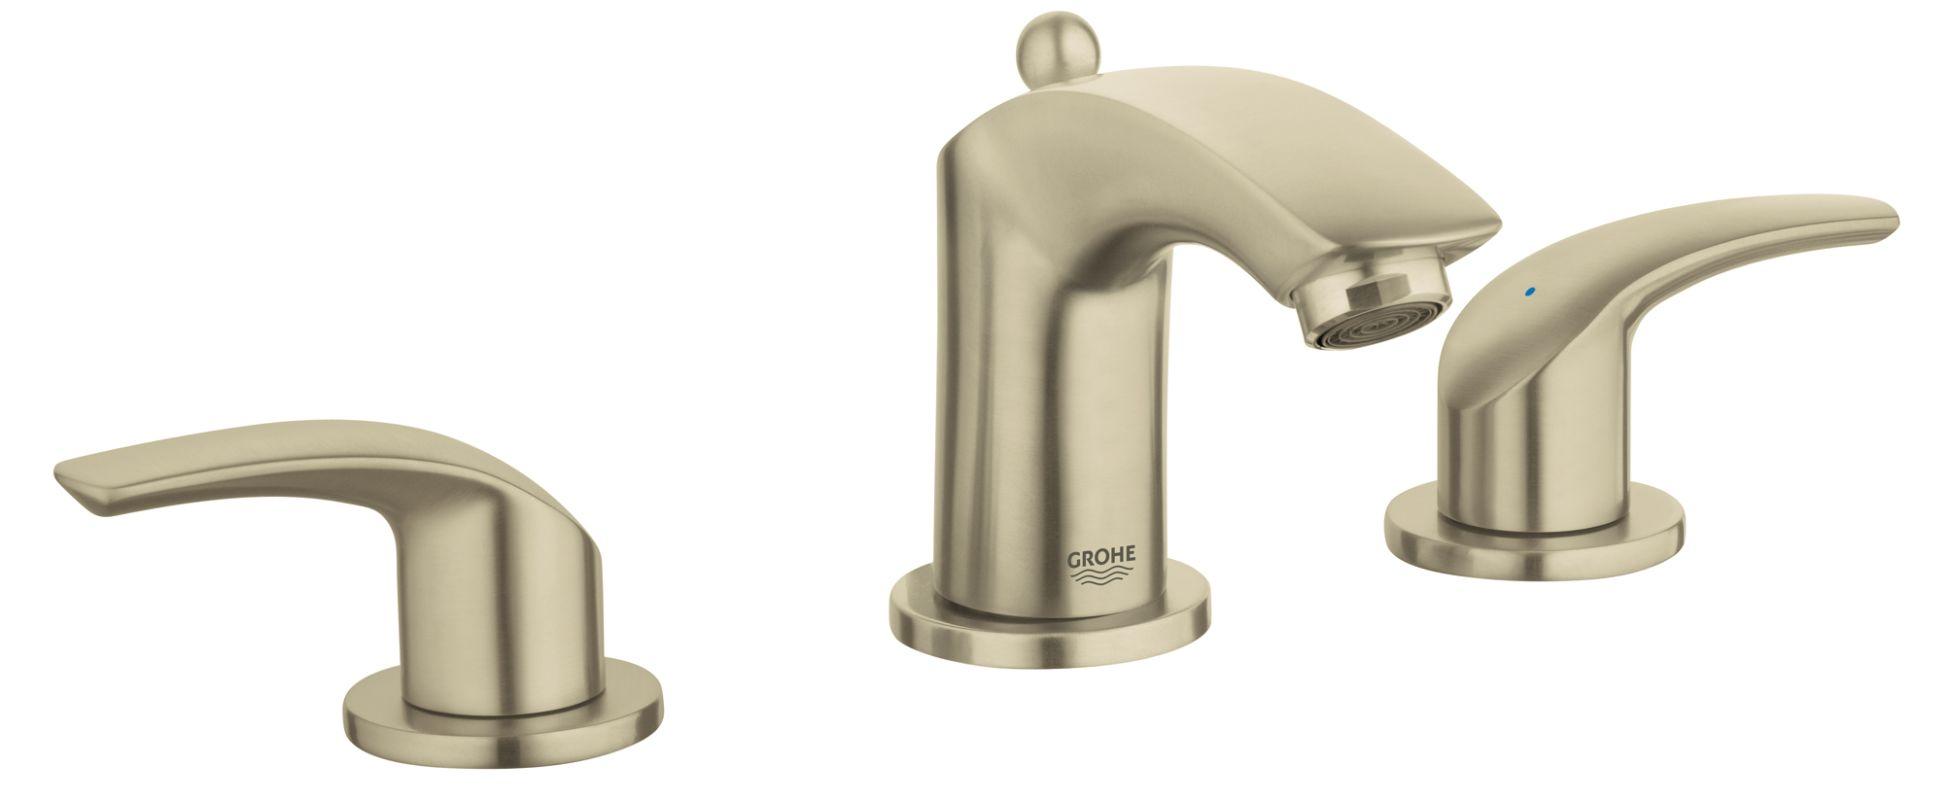 Faucet Com 124068 In Warm Brushed Nickel By Grohe